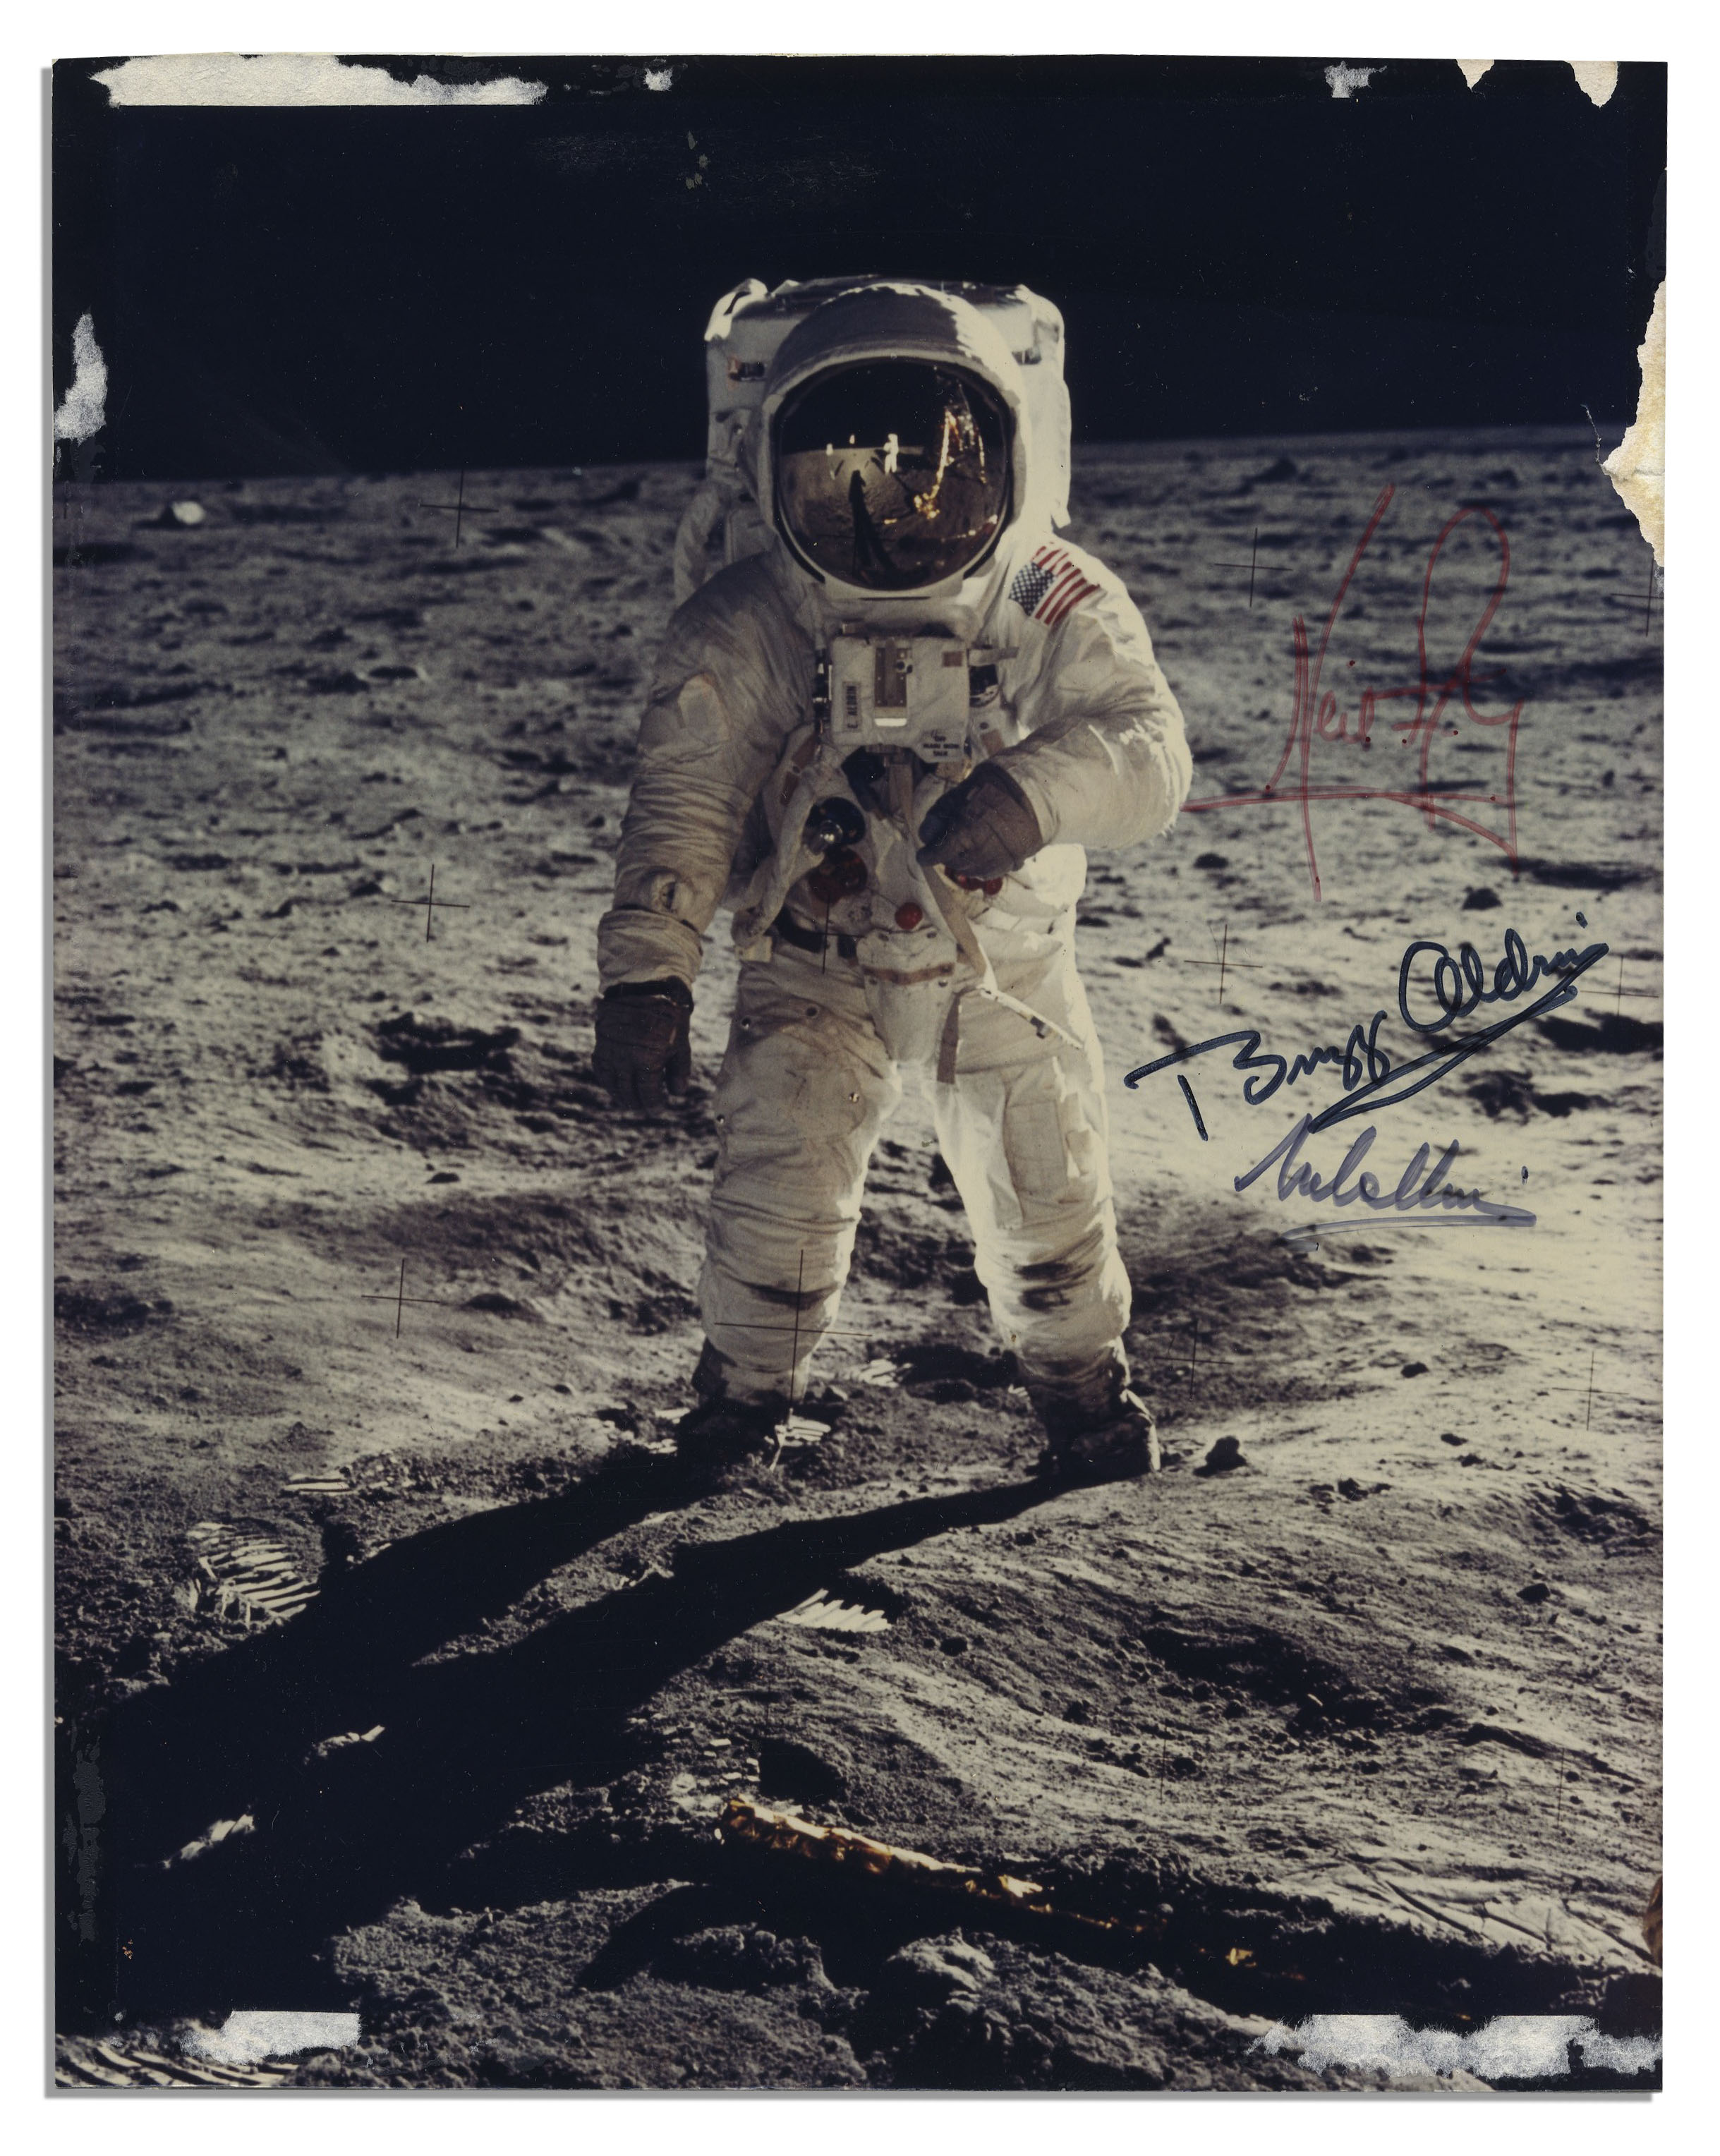 The Most Famous Apollo 11 Photo Signed By The